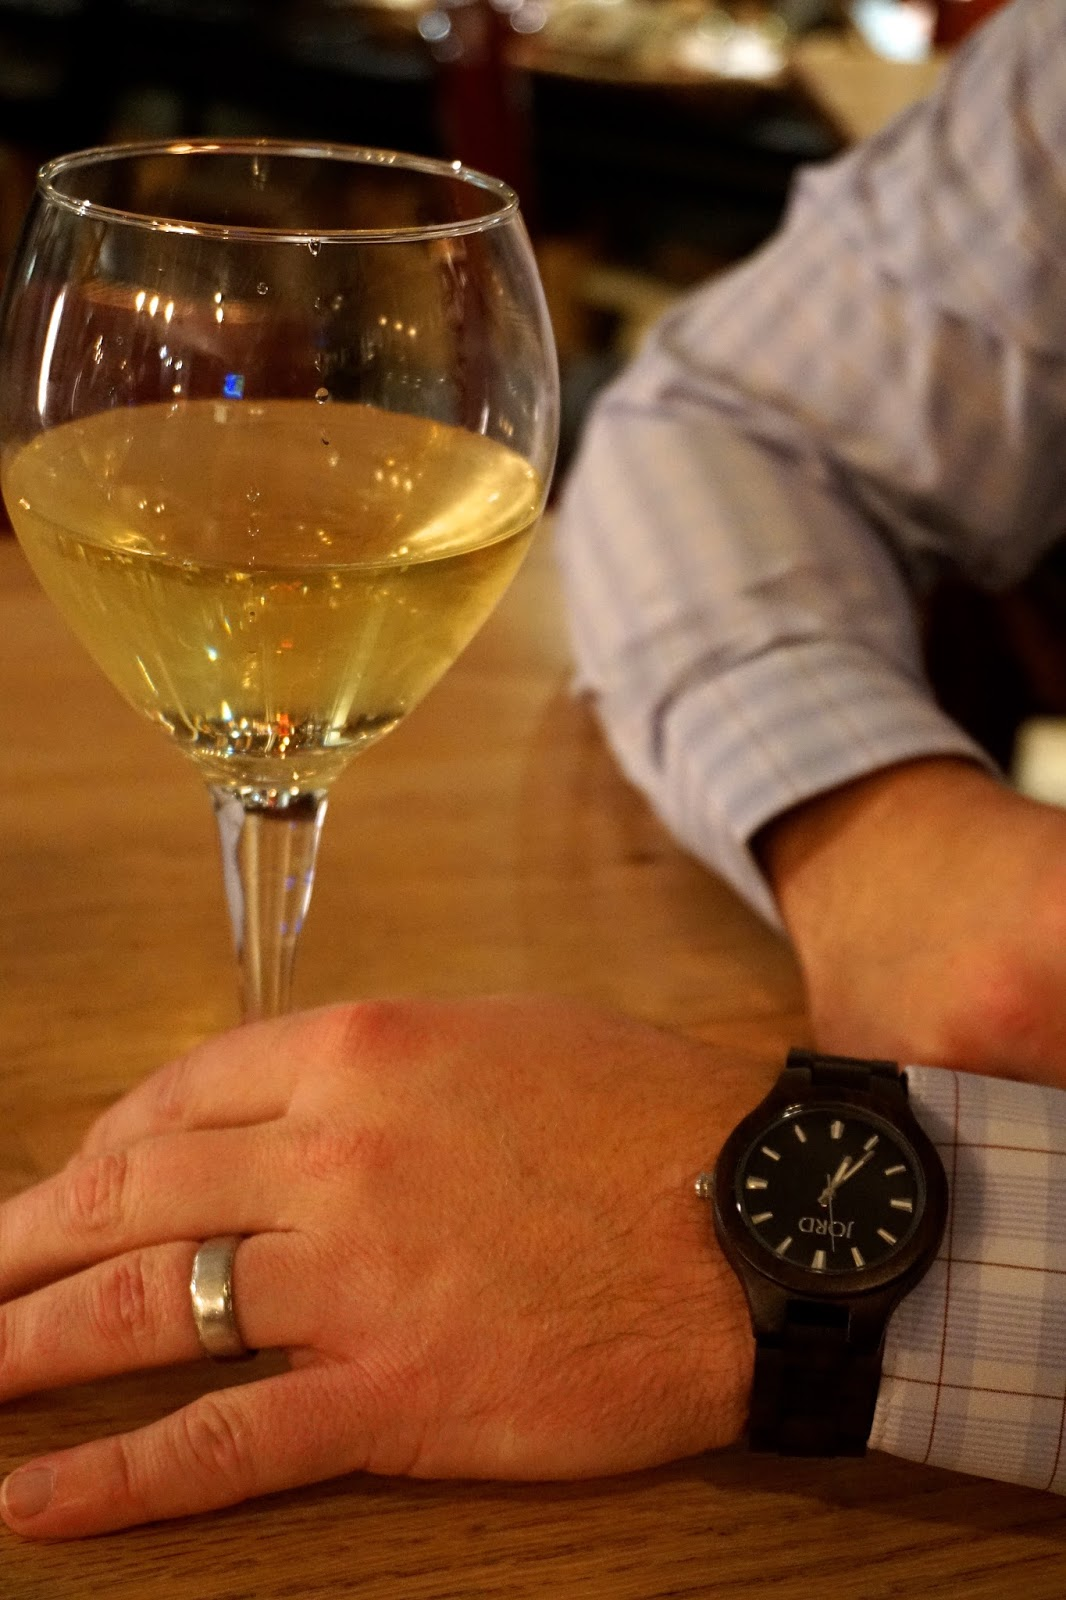 Date Night Planning + A New Watch